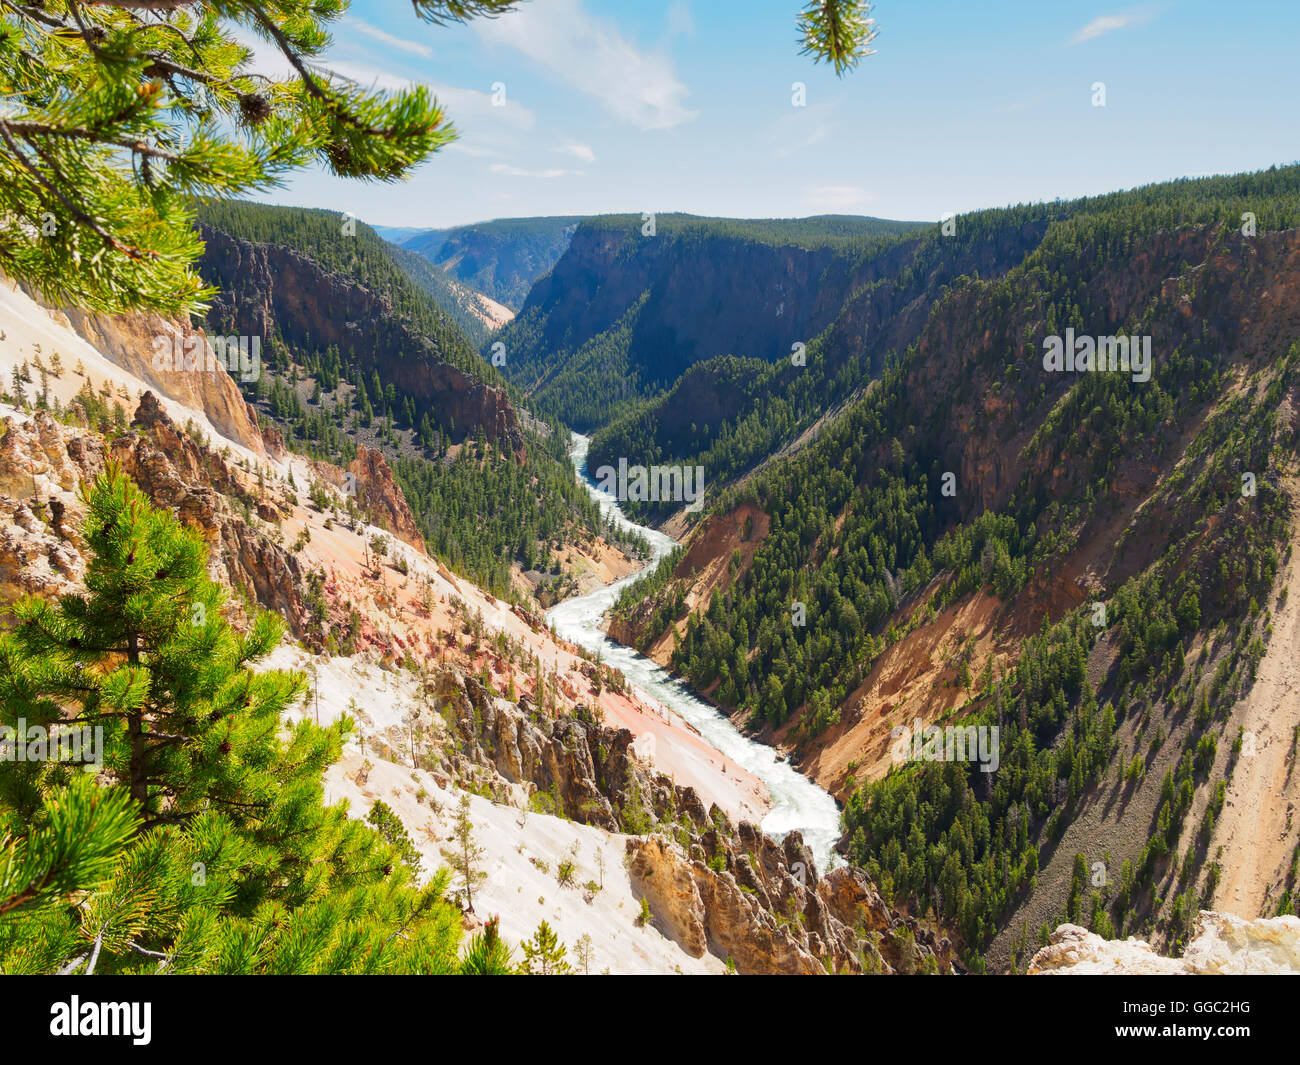 Yellowstone River from Inspiration Point, Yellowstone National Park - Stock Image